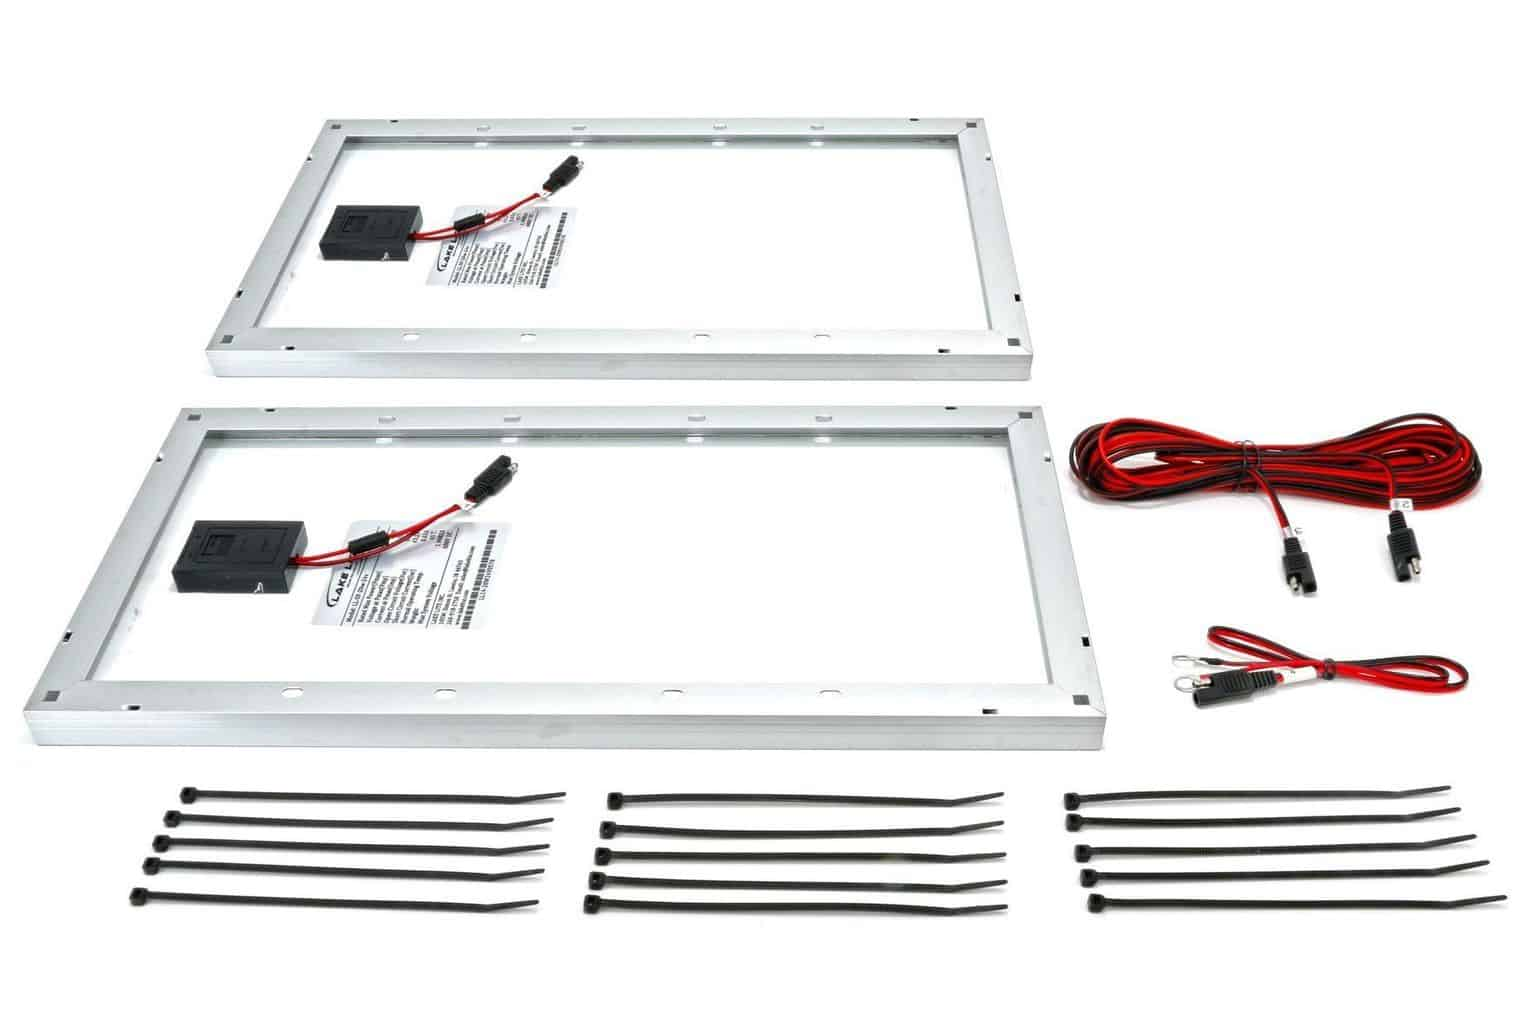 40 Watt 24 Volt Boat Lift Solar Charging Kit Midwest